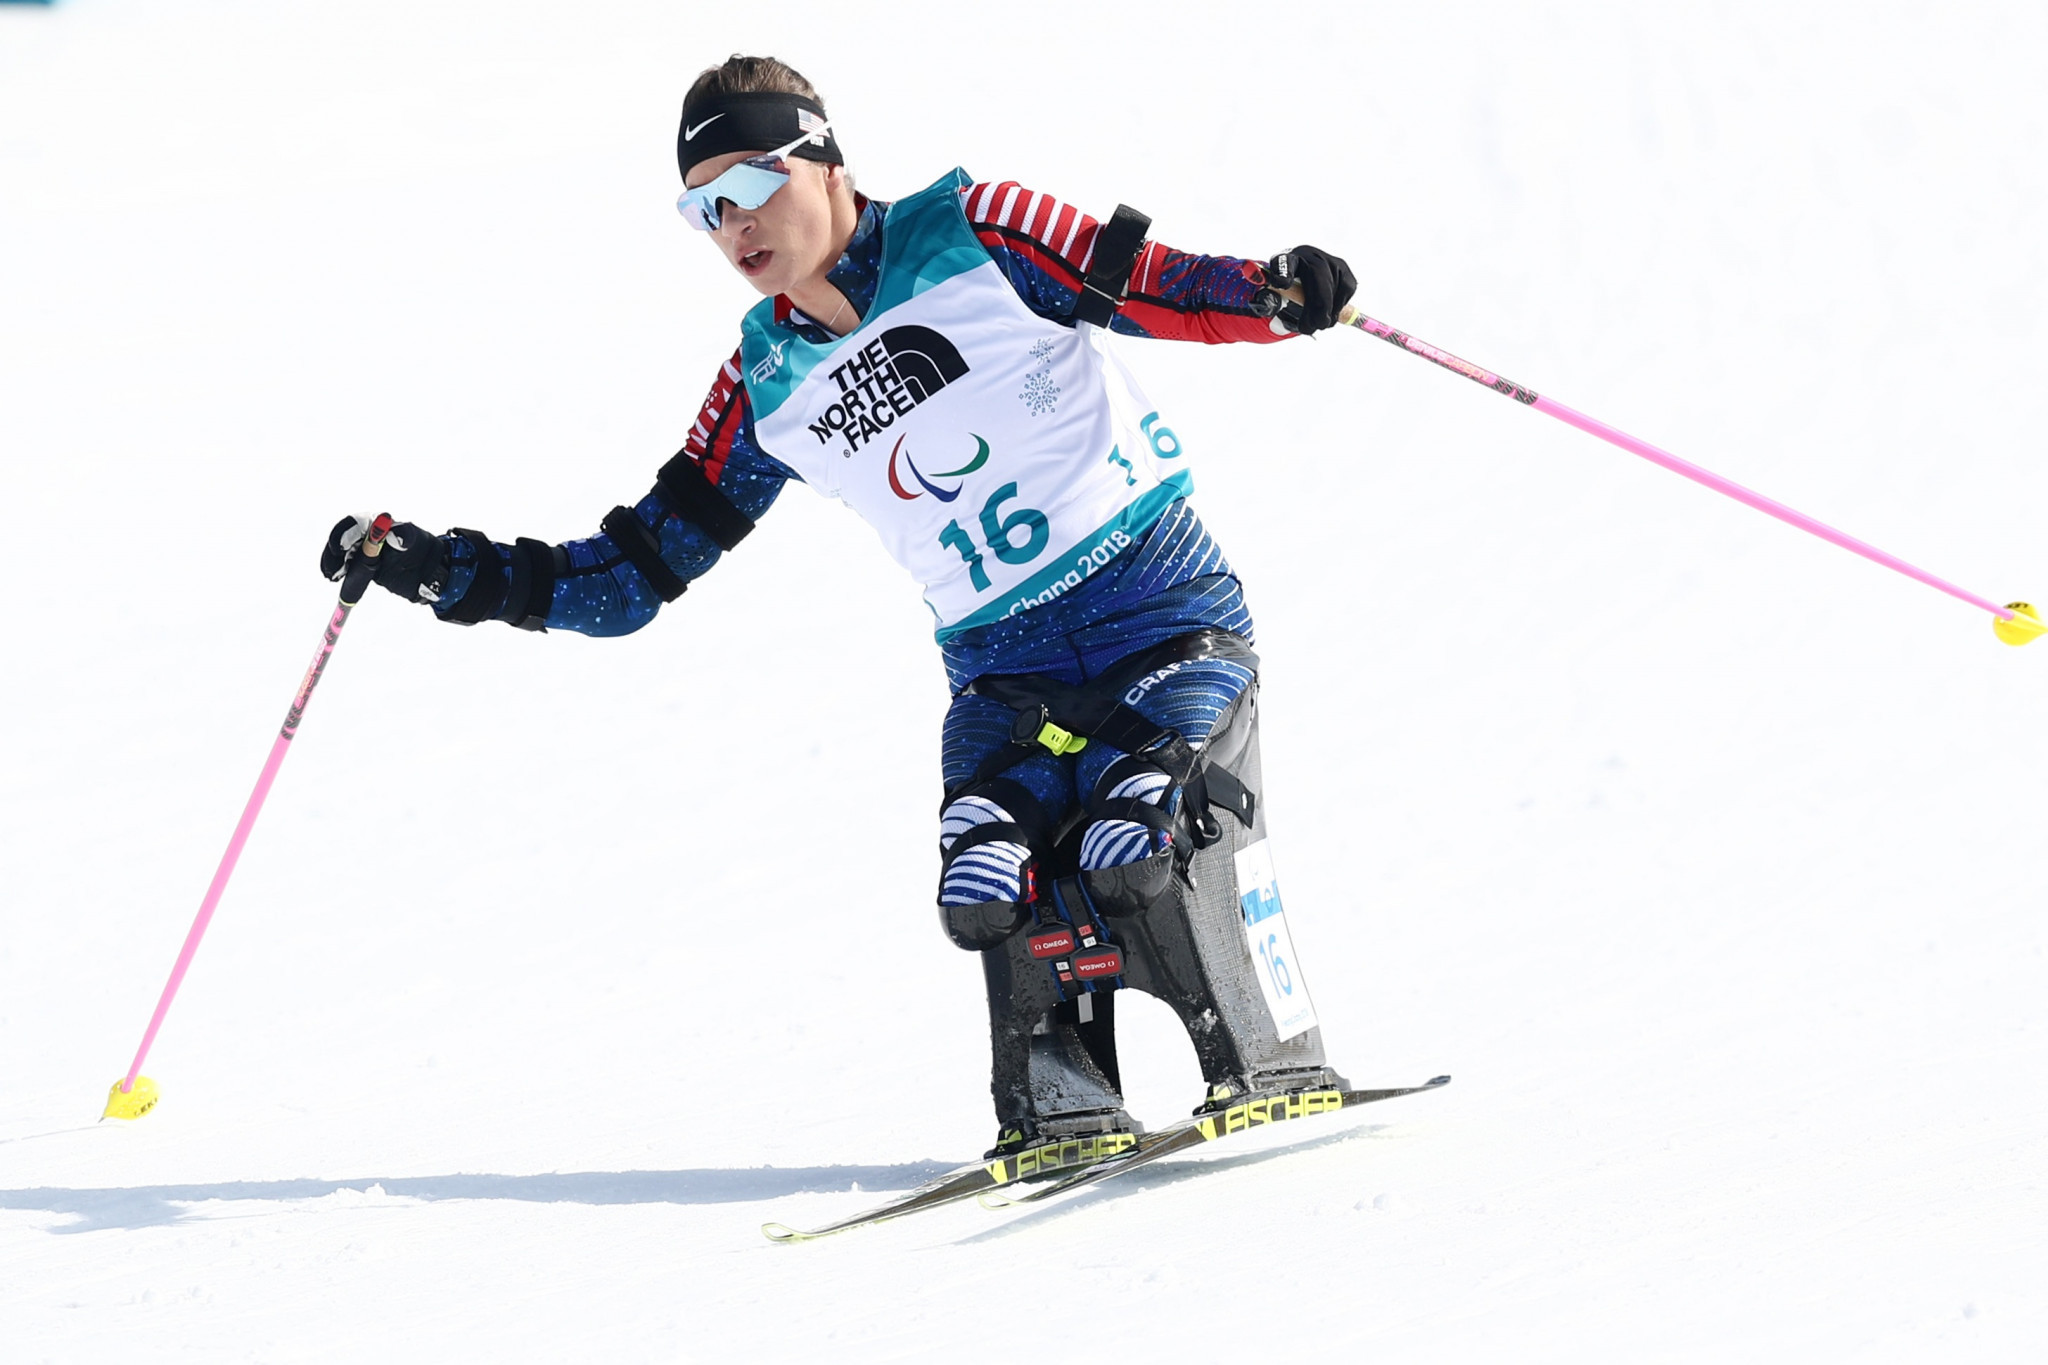 American cross-country skier and biathlete Oksana Masters is also among the trio of athletes